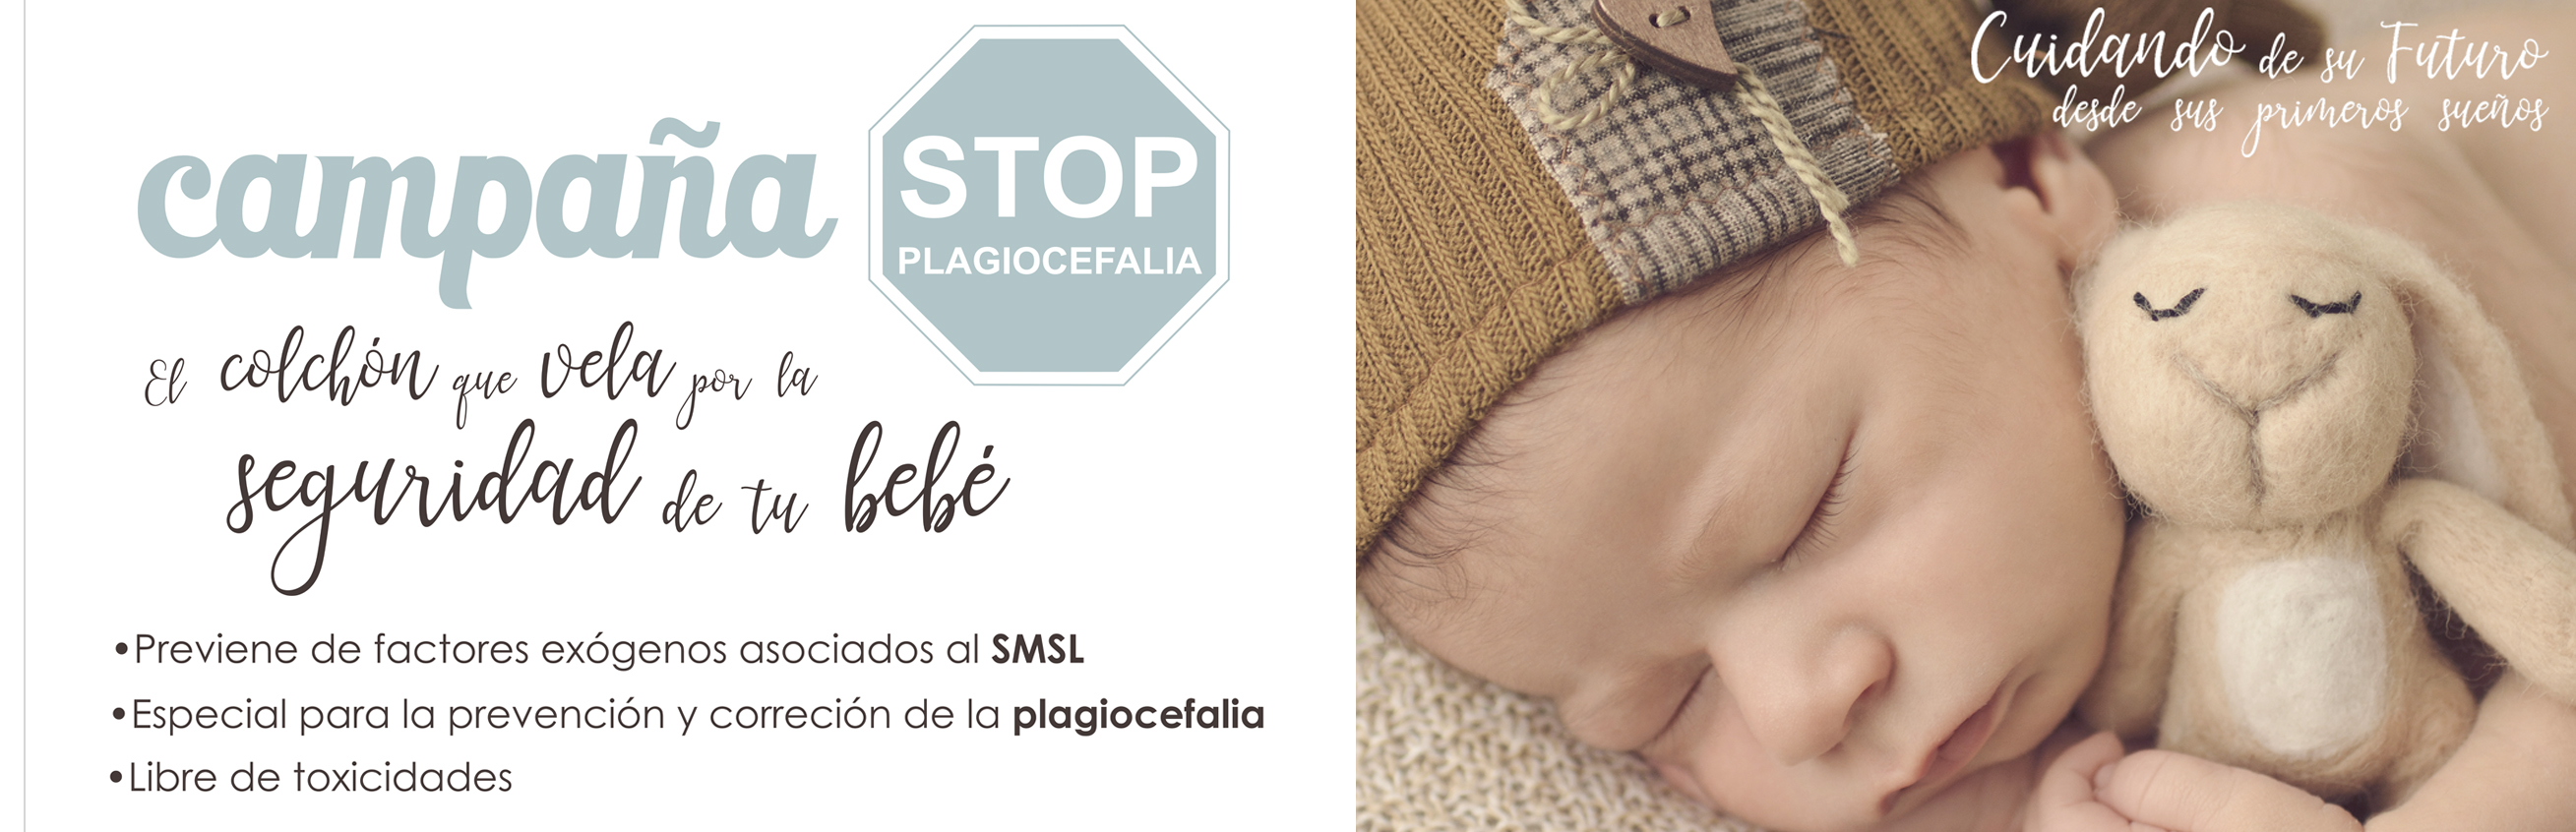 campaña plagiocefalia Sleep Care by Trébol Mobiliario